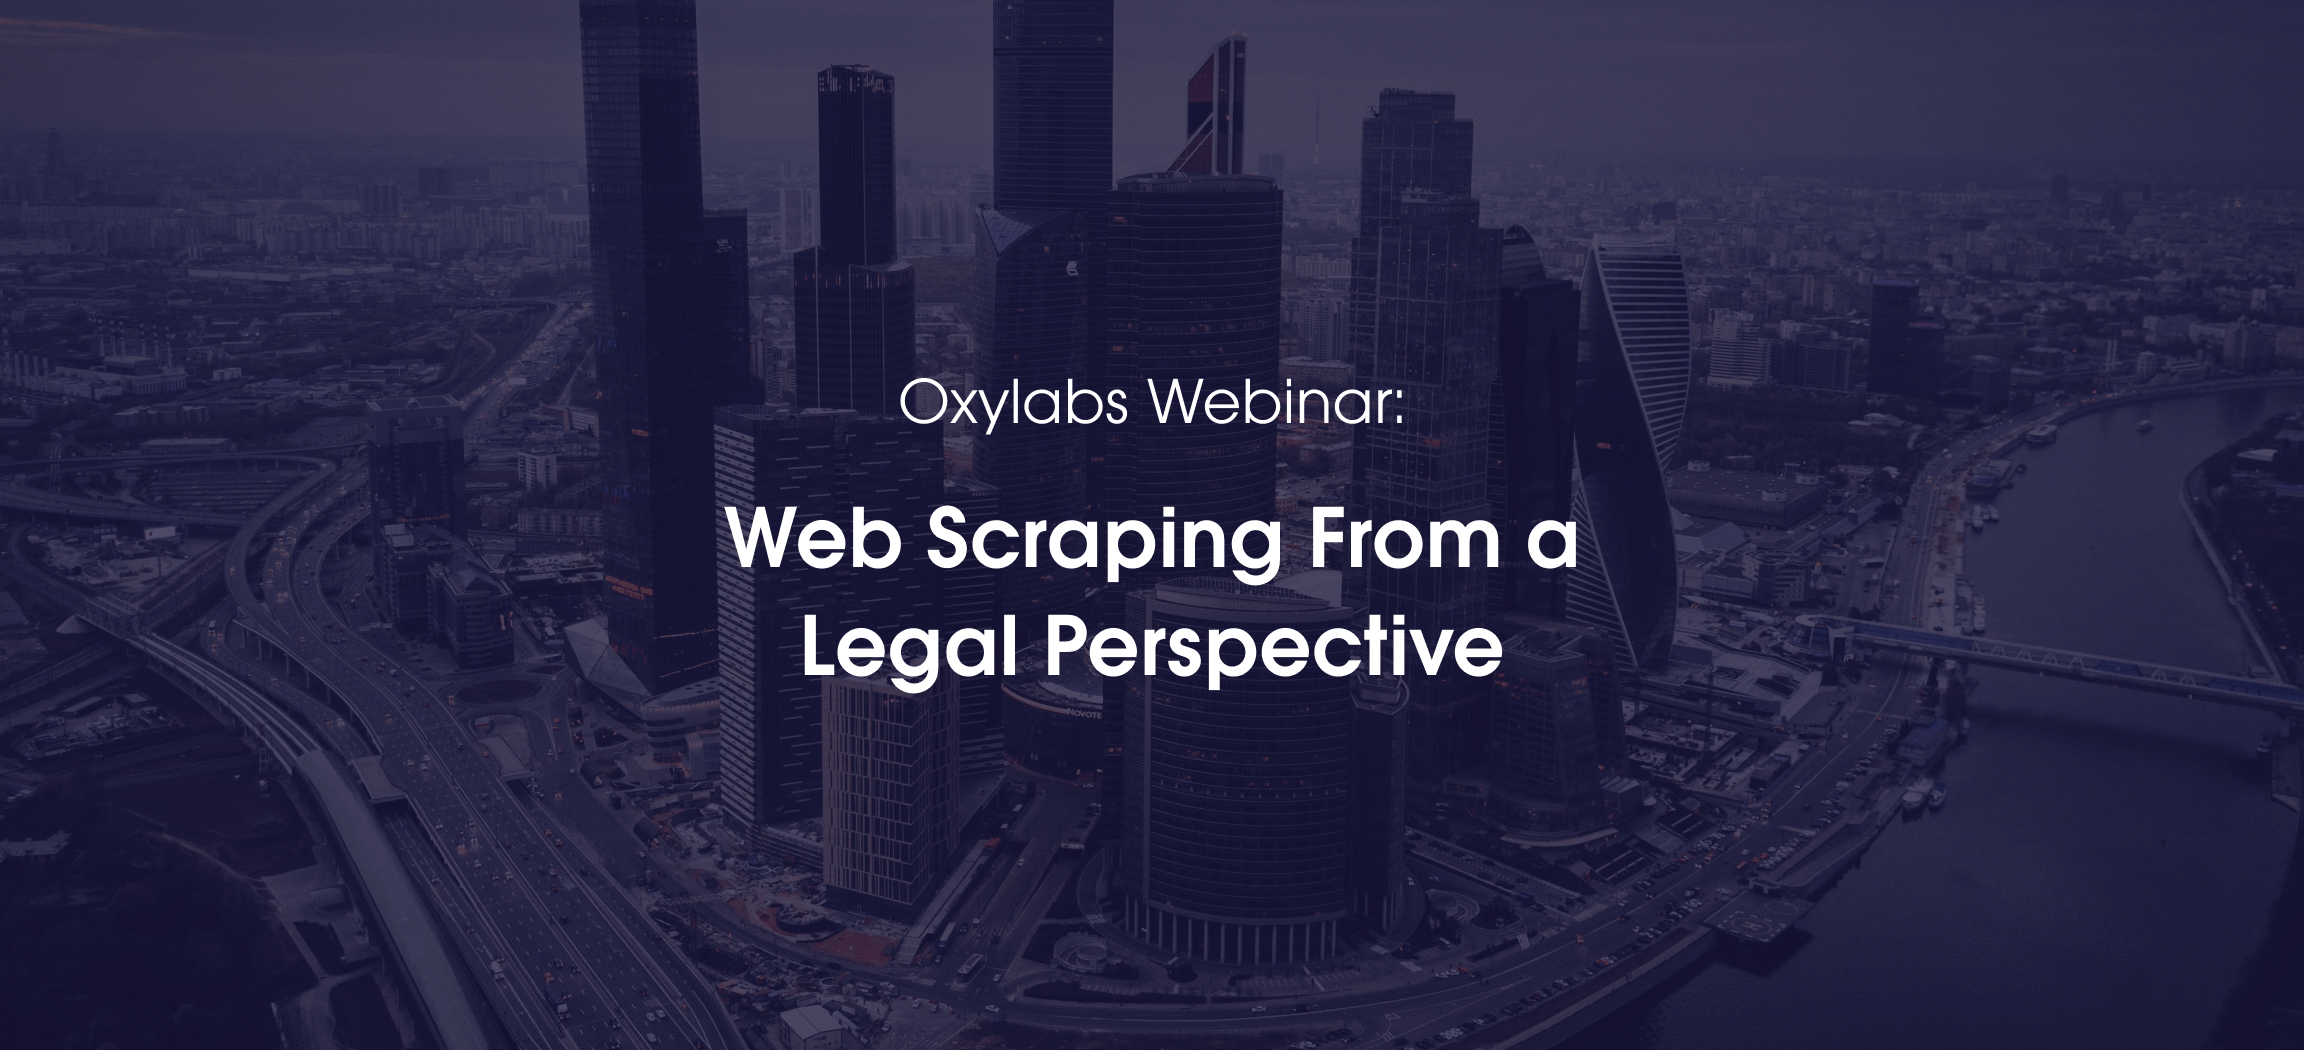 Oxylabs Webinar: Web Scraping From a Legal Perspective